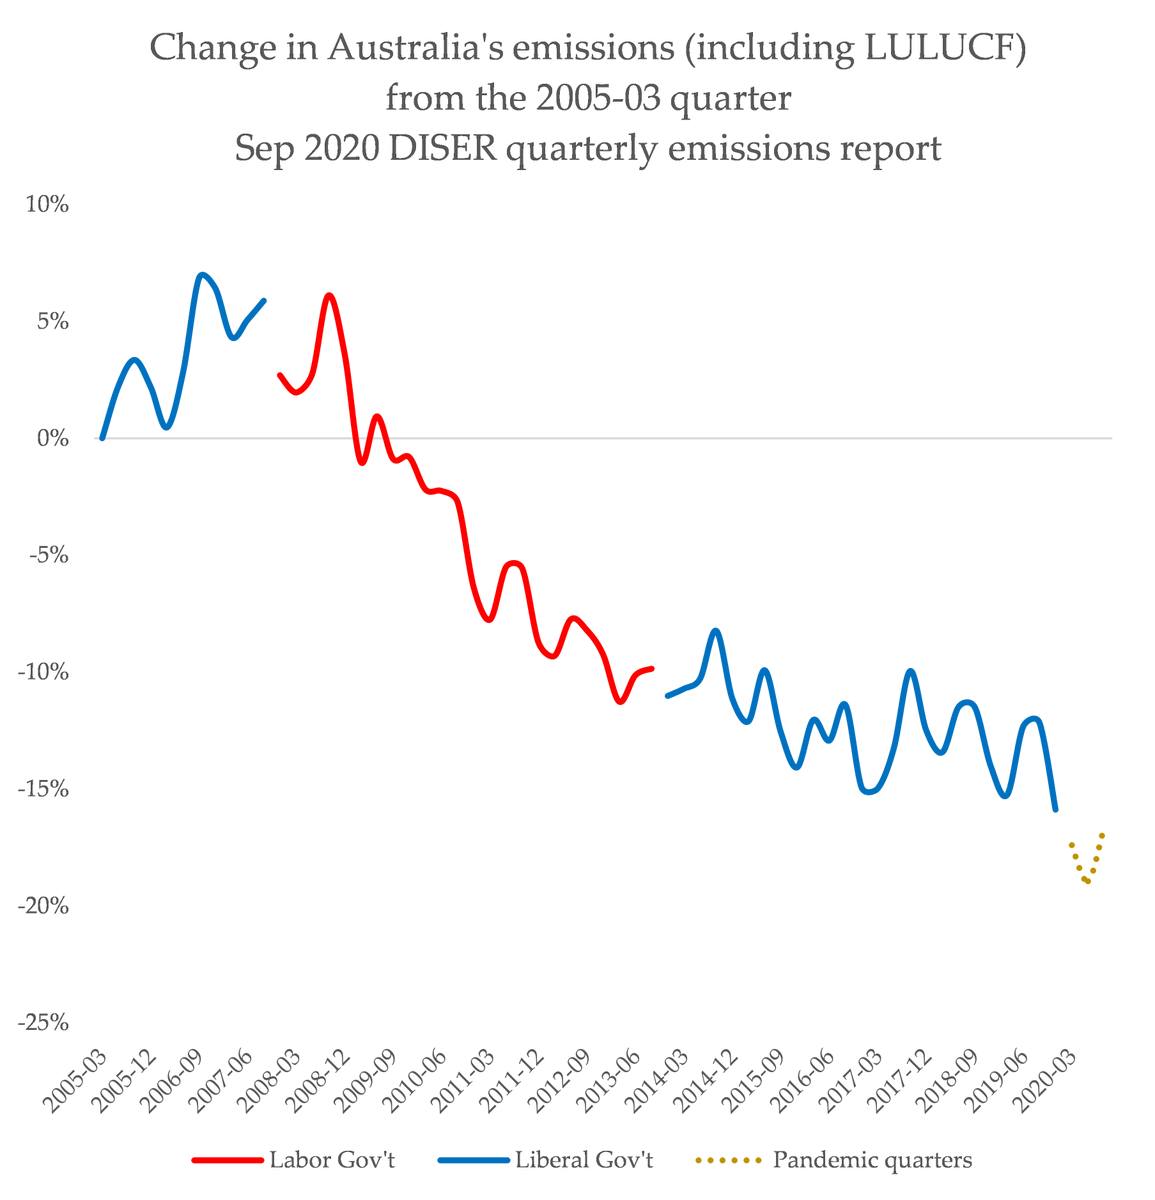 """For a few days now, PM Morrison has been saying that Australia's emissions have dropped """"by 36%"""" from 2005 levels. But that's not right: it's 17-20%, according to the latest official data (most under another gov't, the rest due to renewables + COVID19)"""